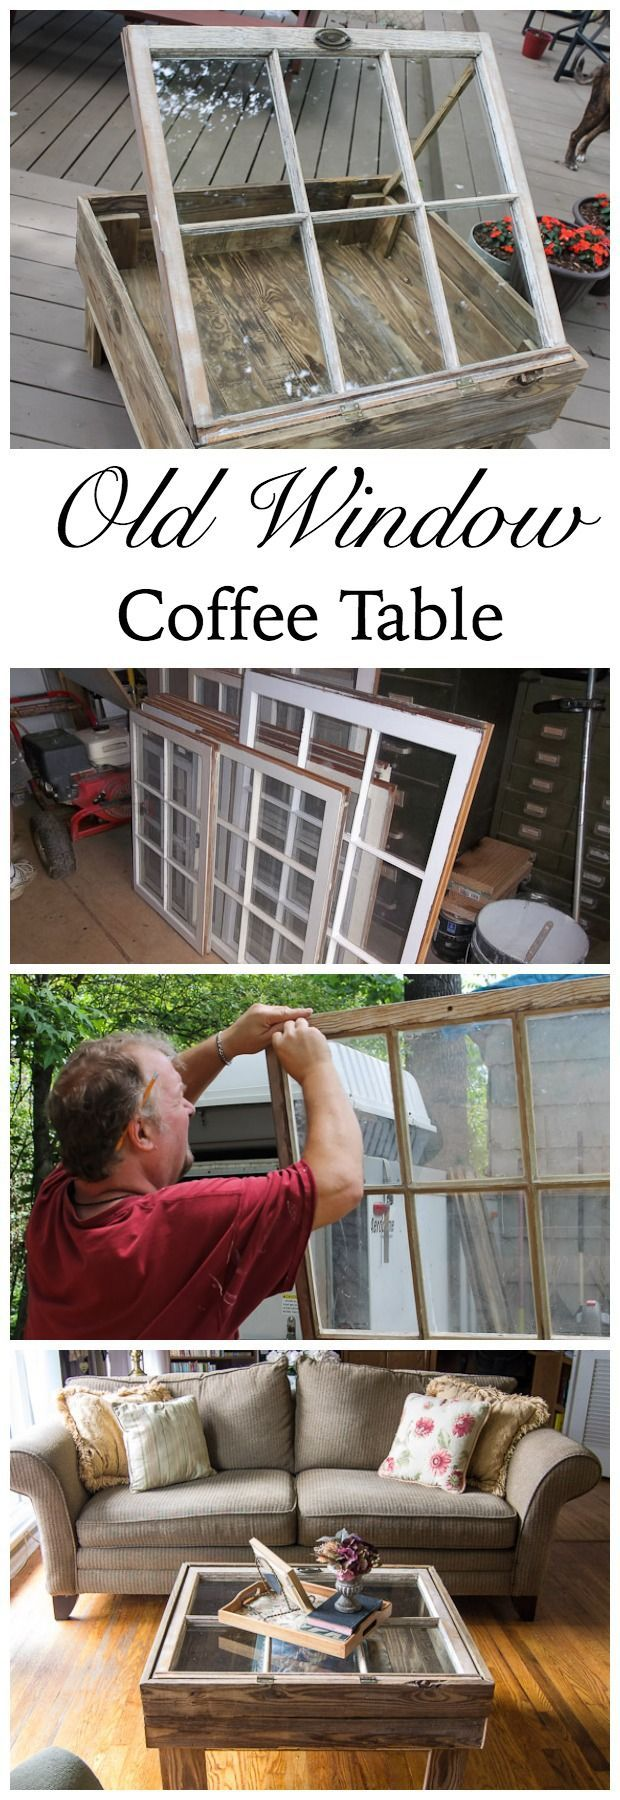 """<a href=""""http://martysmusings.net/2012/05/unbelievable-window-table-or-my-husband.html"""" target=""""_blank""""><strong>Old Window Coffee Table from Marty's Musings</strong></a>"""